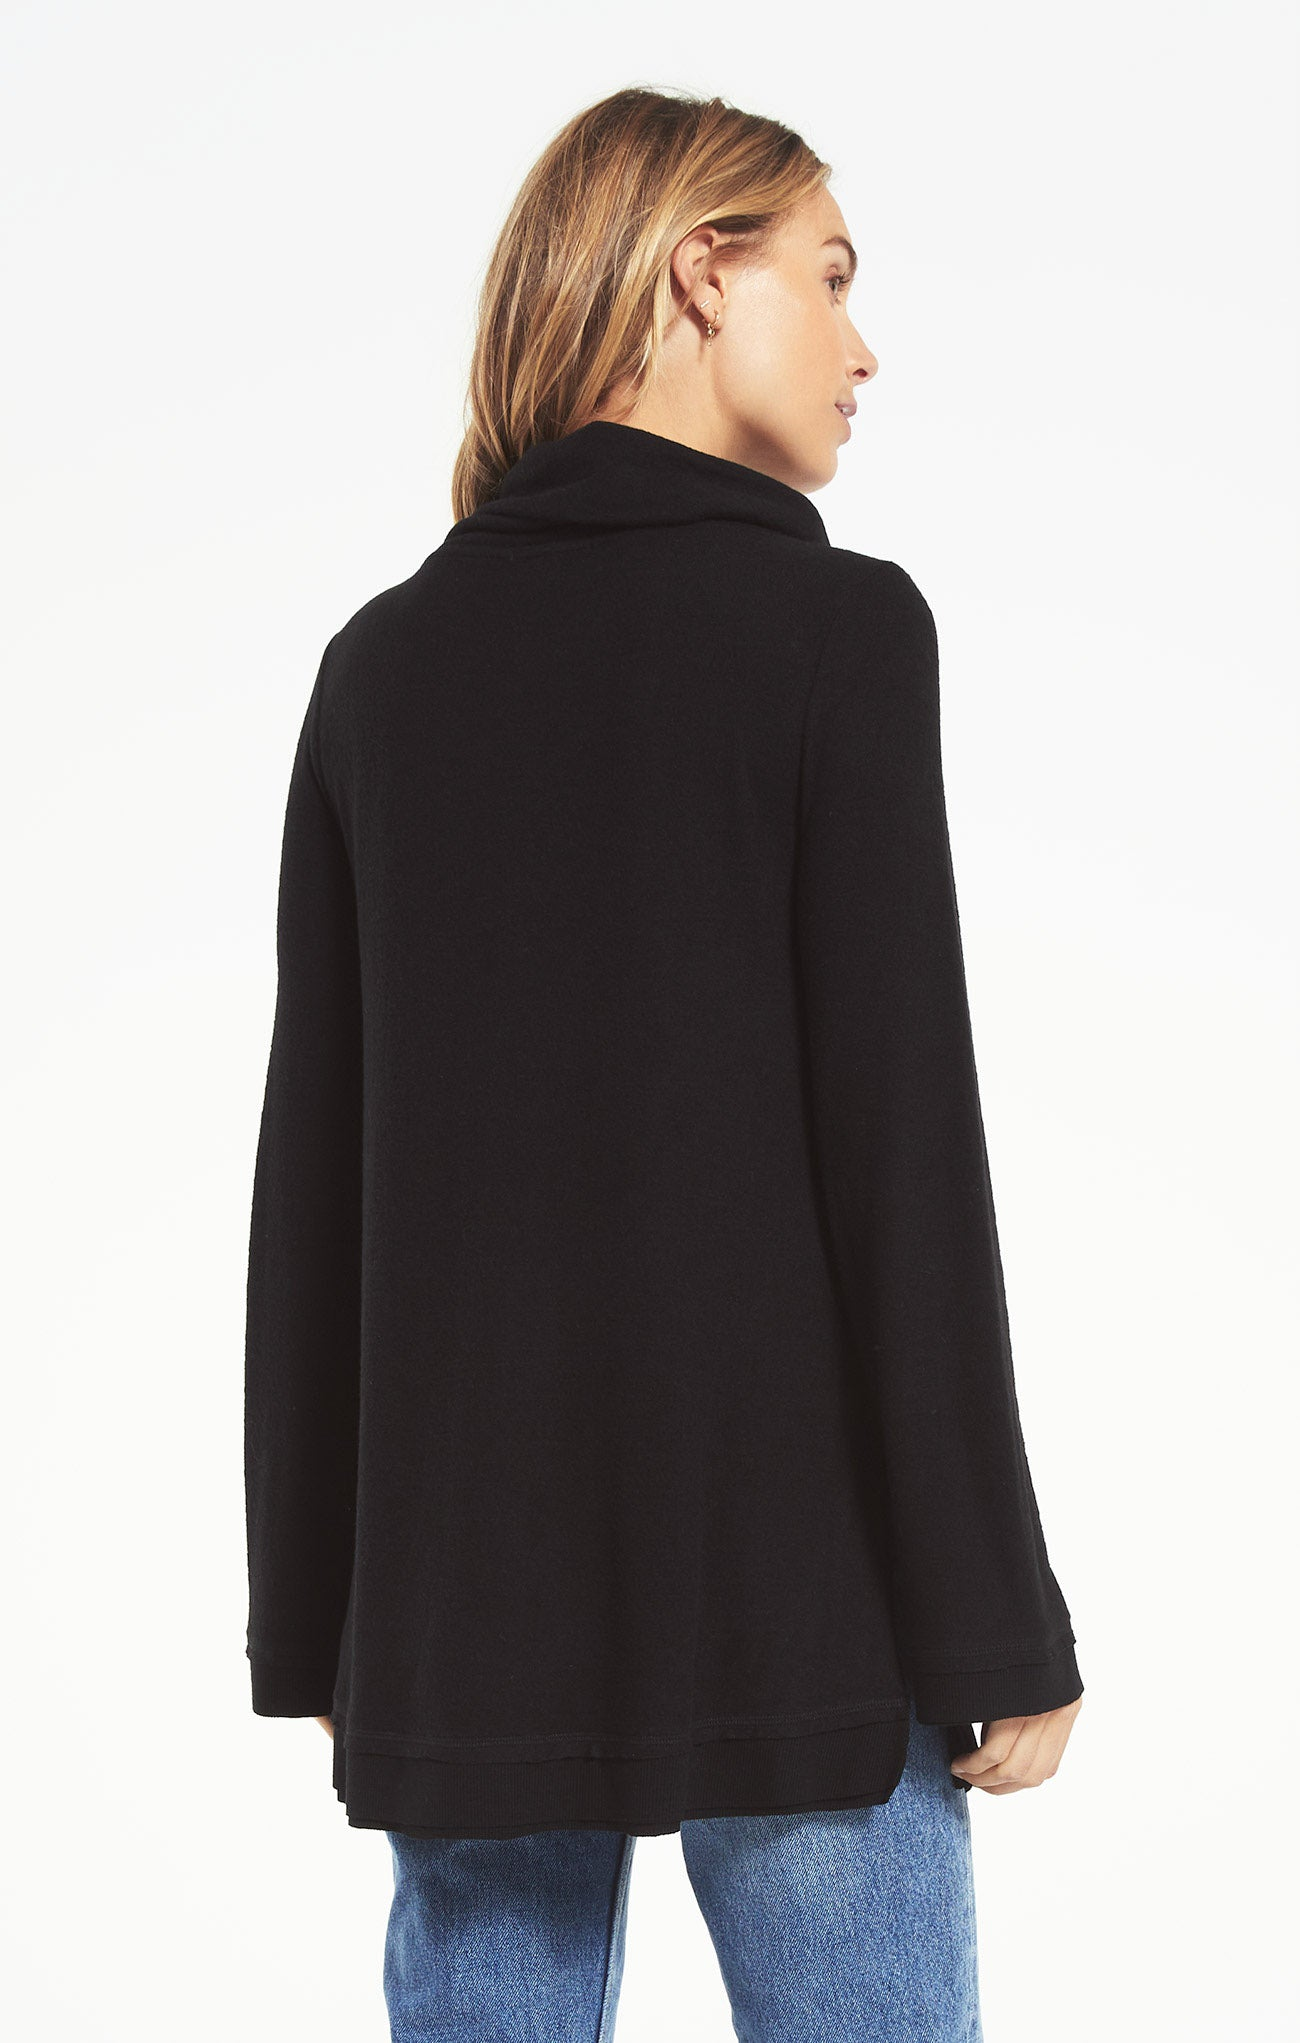 Tops Ali Cowl Sweater Slub Pullover Black